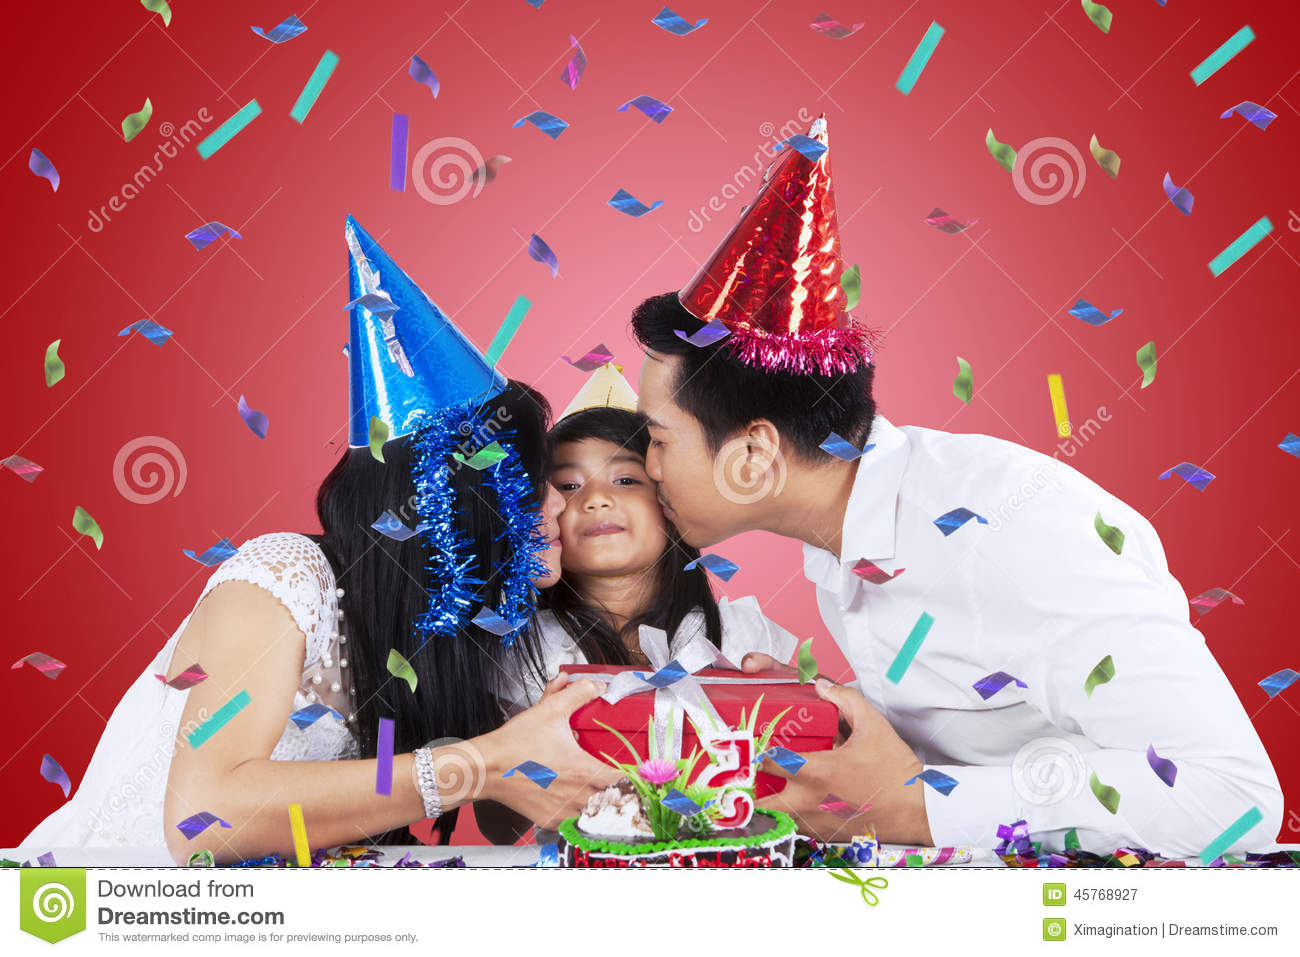 Portrait Of Asian Parents Kissing Their Child While Giving A Gift In Birthday Party